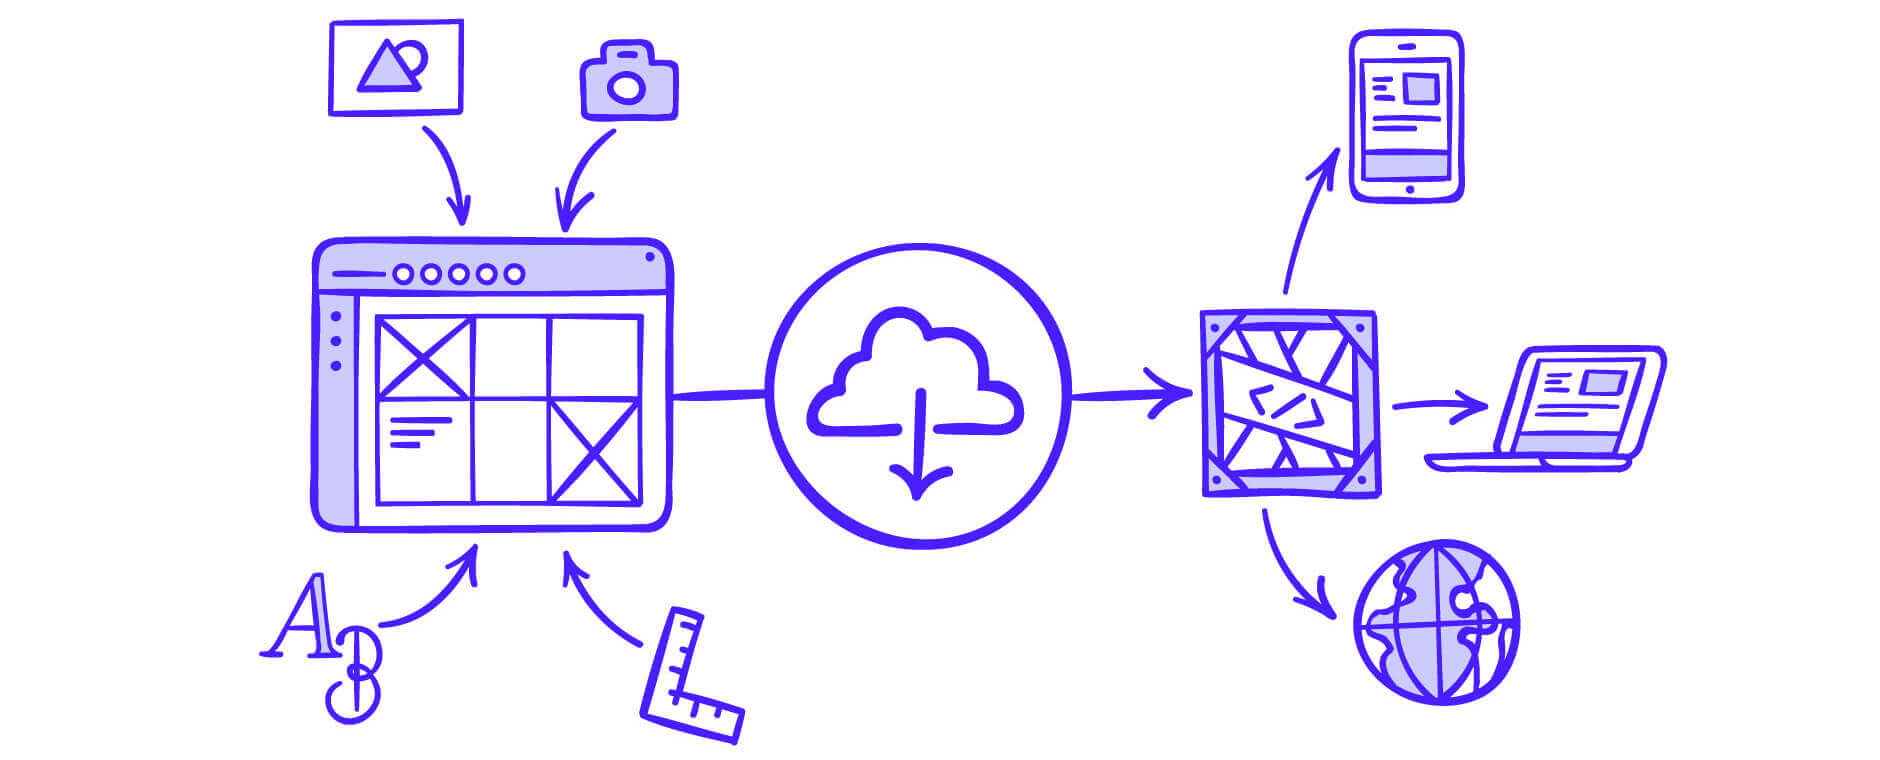 Illustration of multiple devices with a cloud in the middle, symbolizing the Setka Design Cloud.